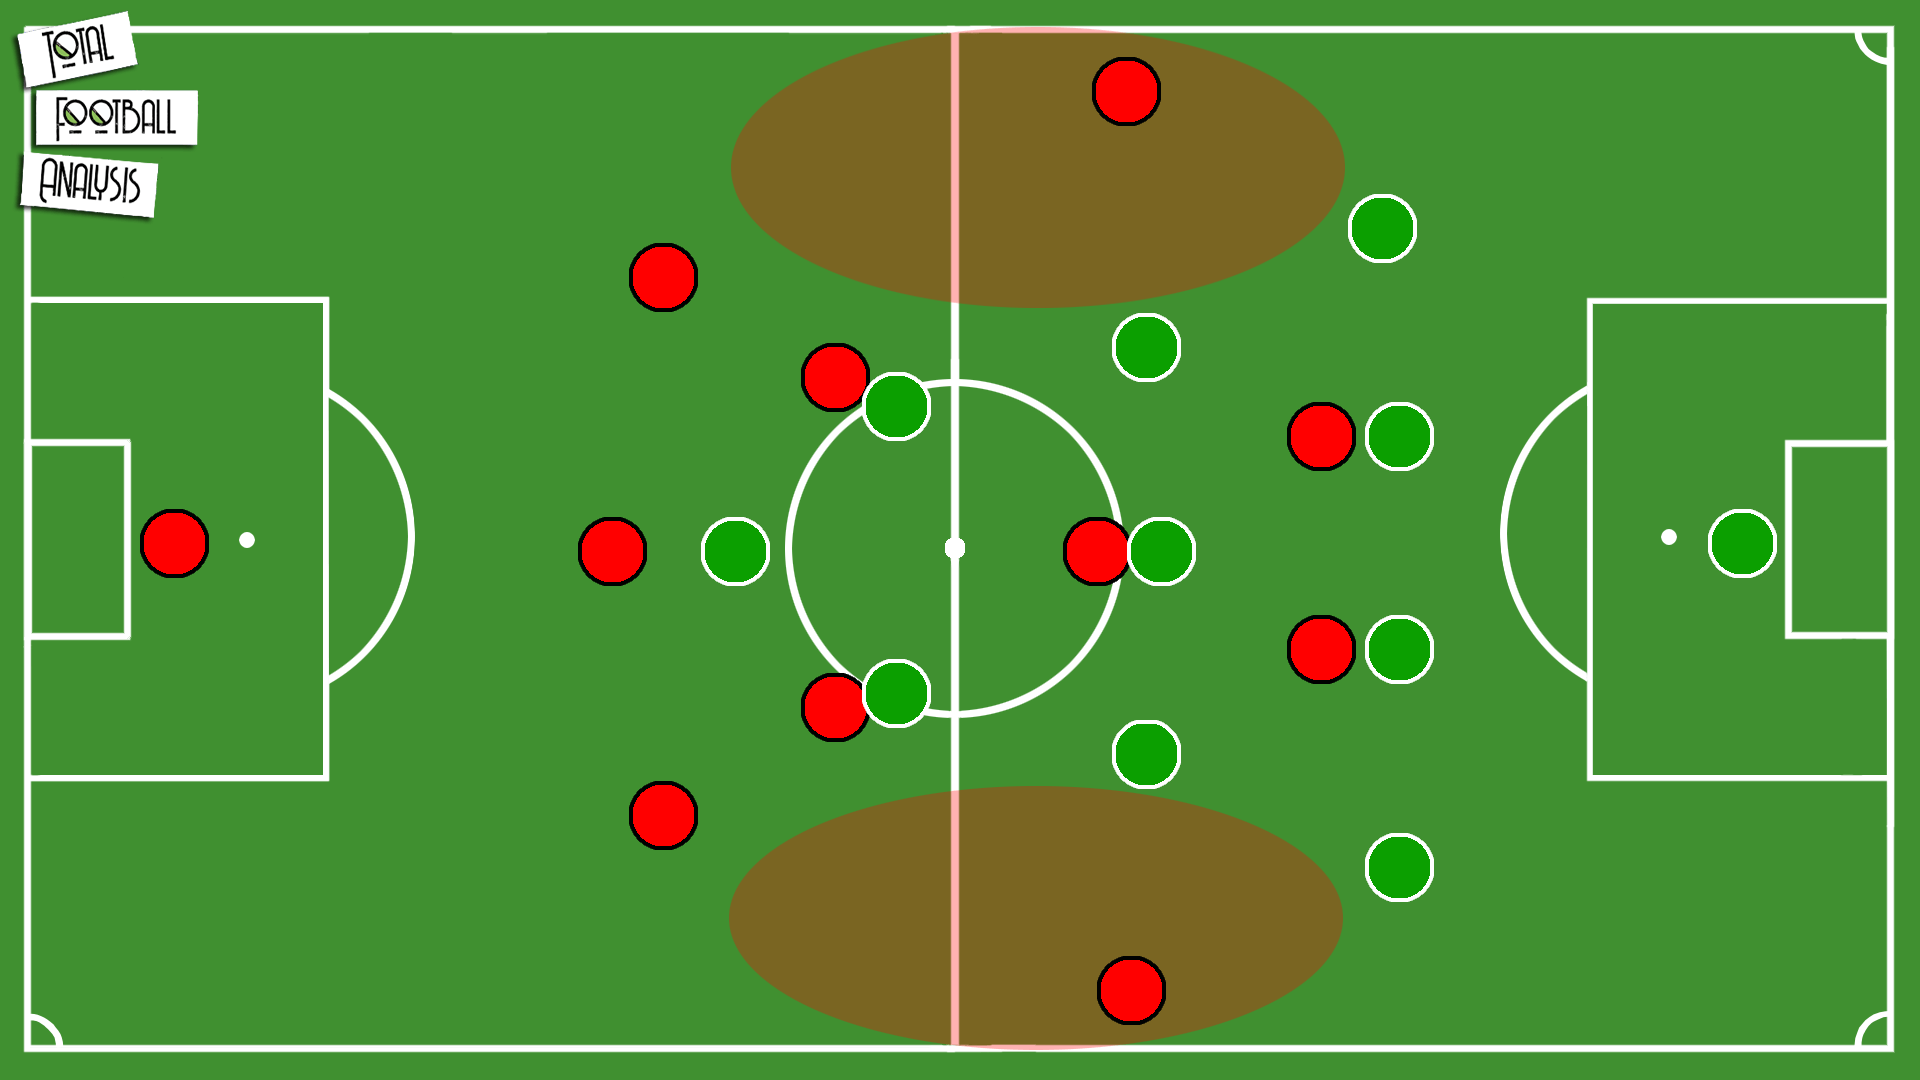 Bundesliga 2019/20: Bayer Leverkusen vs Werder Bremen - tactical analysis tactics